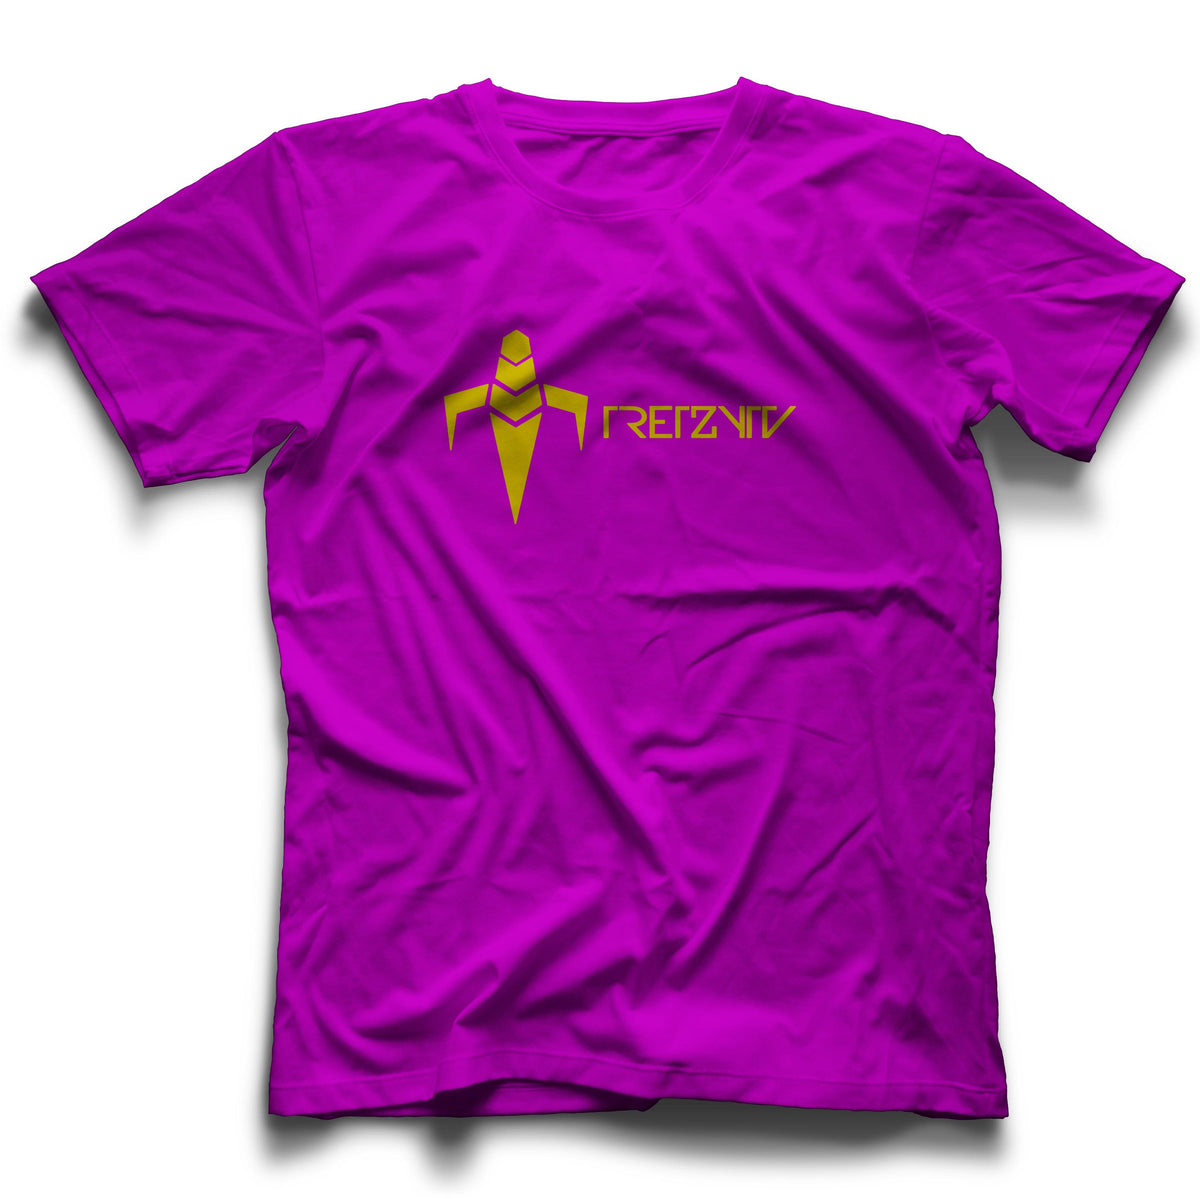 Simple Tretzy  T shirt:  Purple